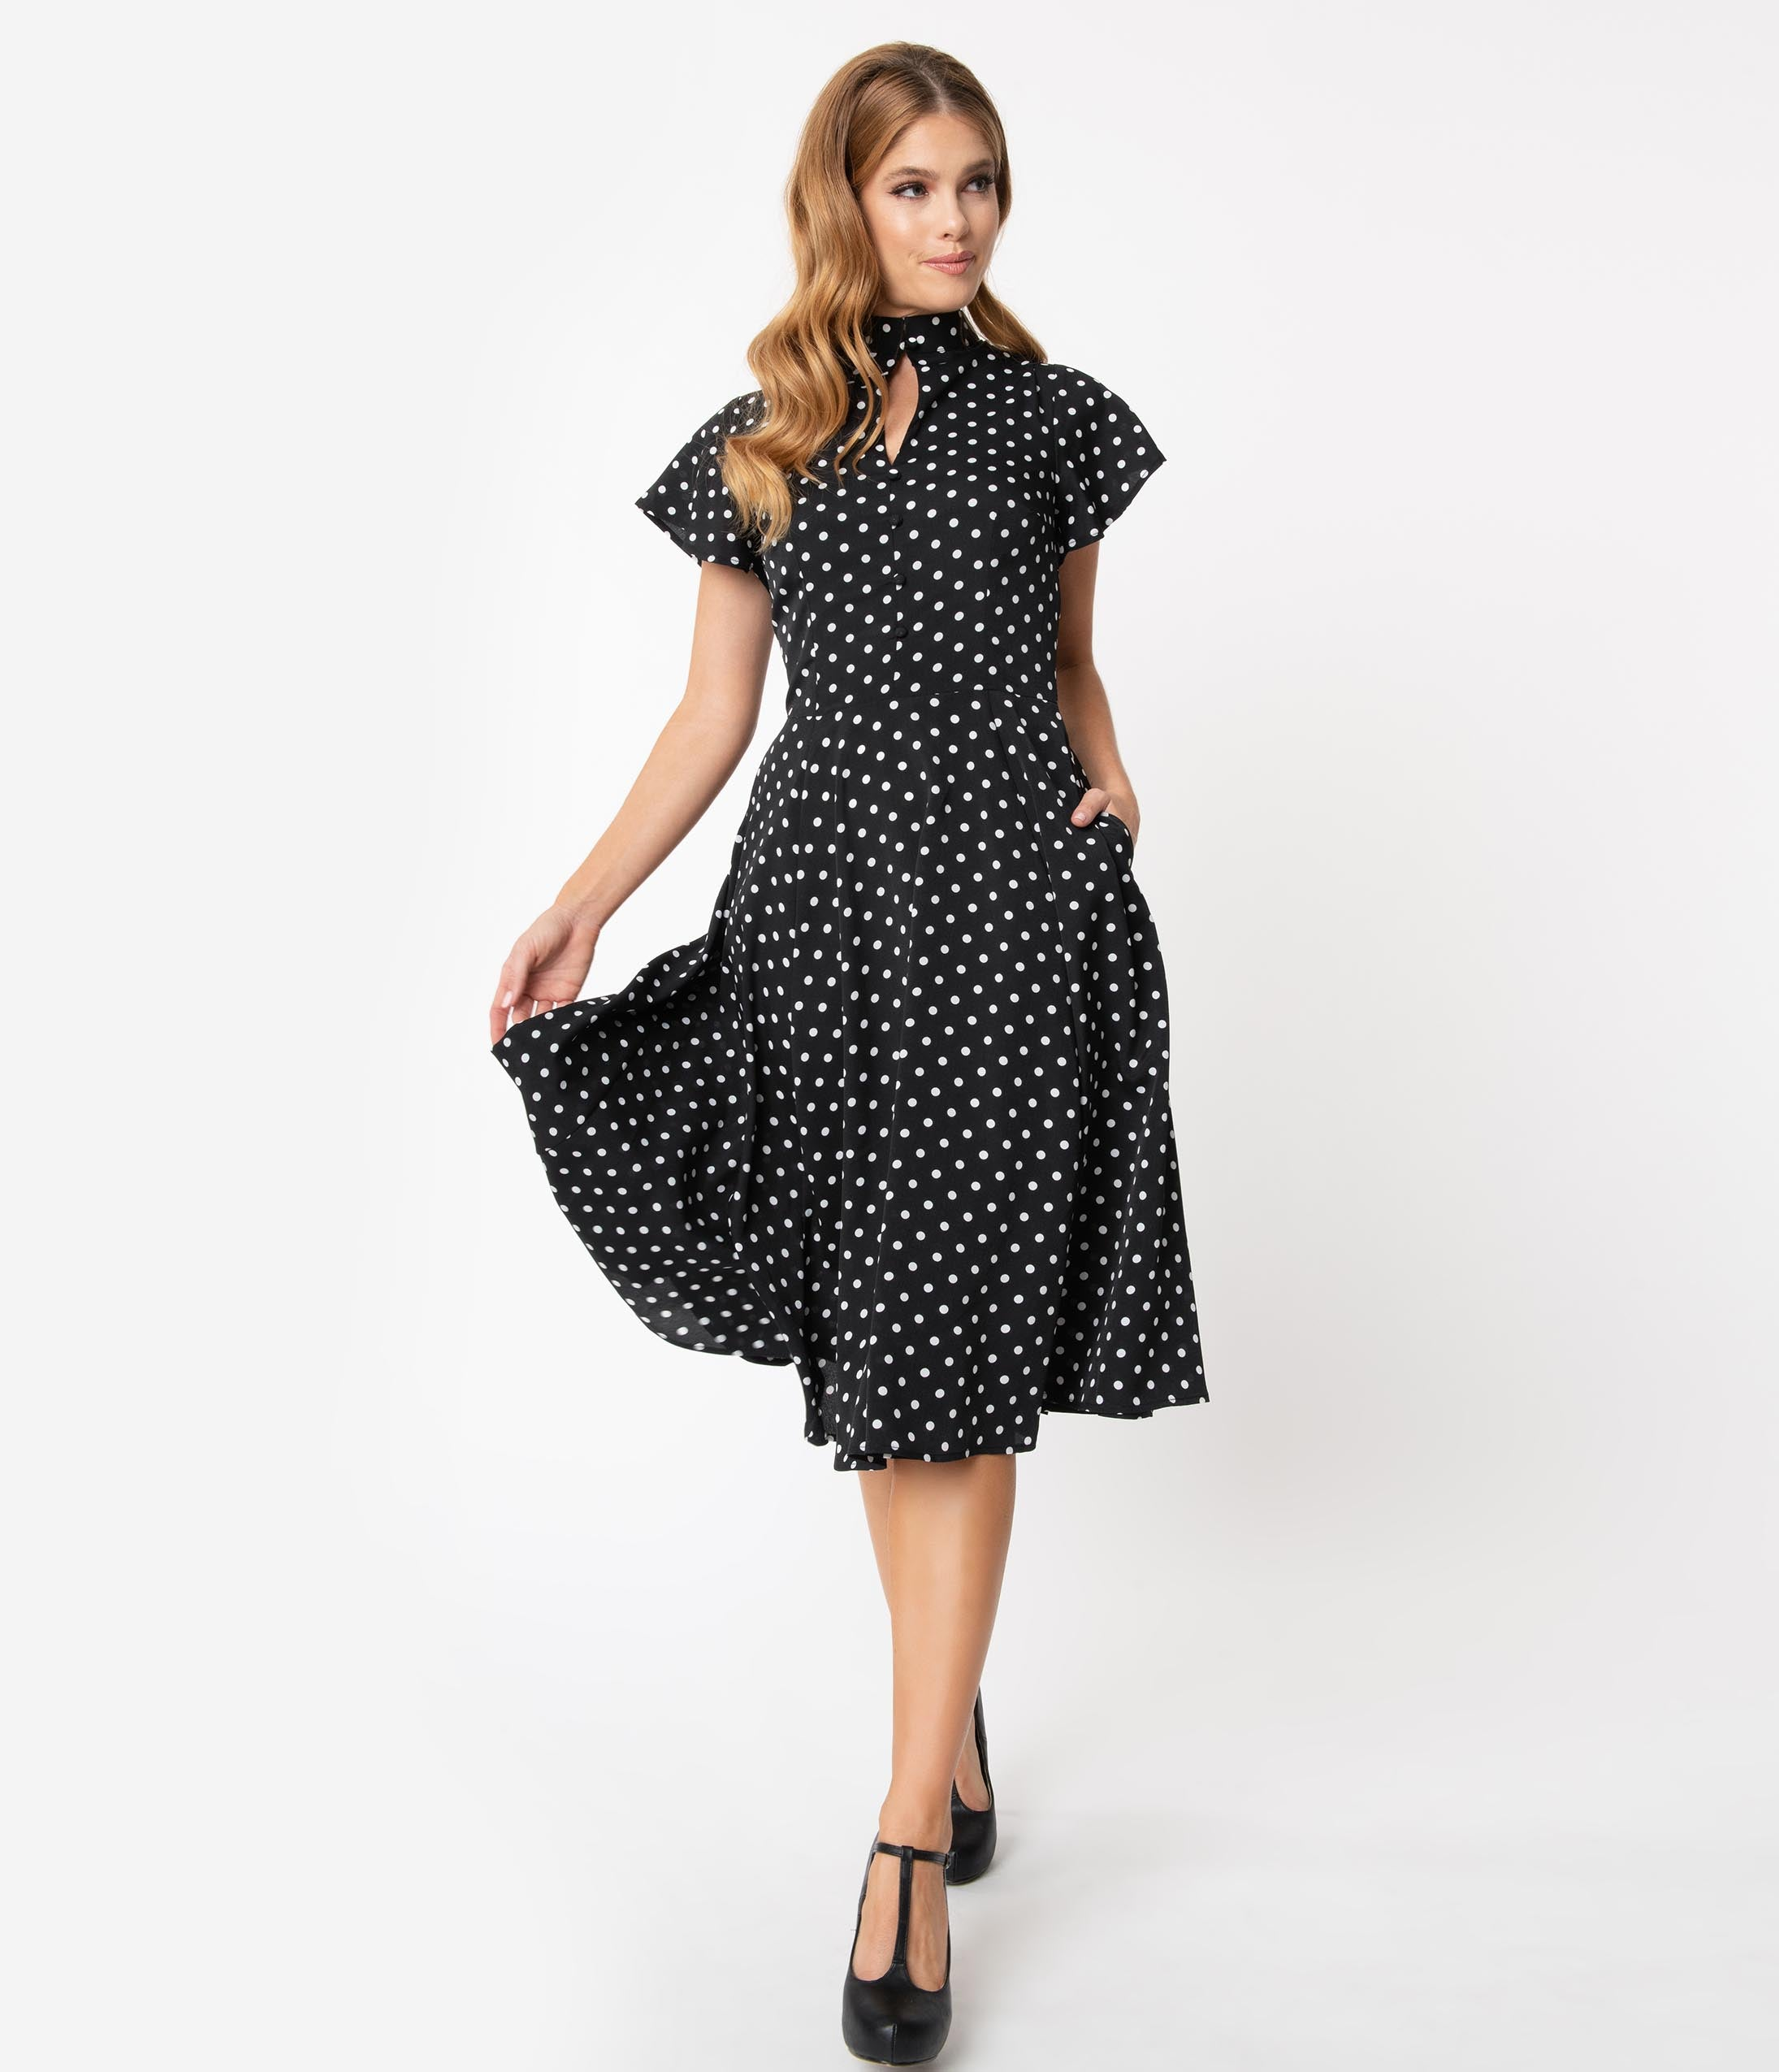 500 Vintage Style Dresses for Sale | Vintage Inspired Dresses Unique Vintage 1950S Black  White Polka Dot Baltimore Swing Dress $98.00 AT vintagedancer.com